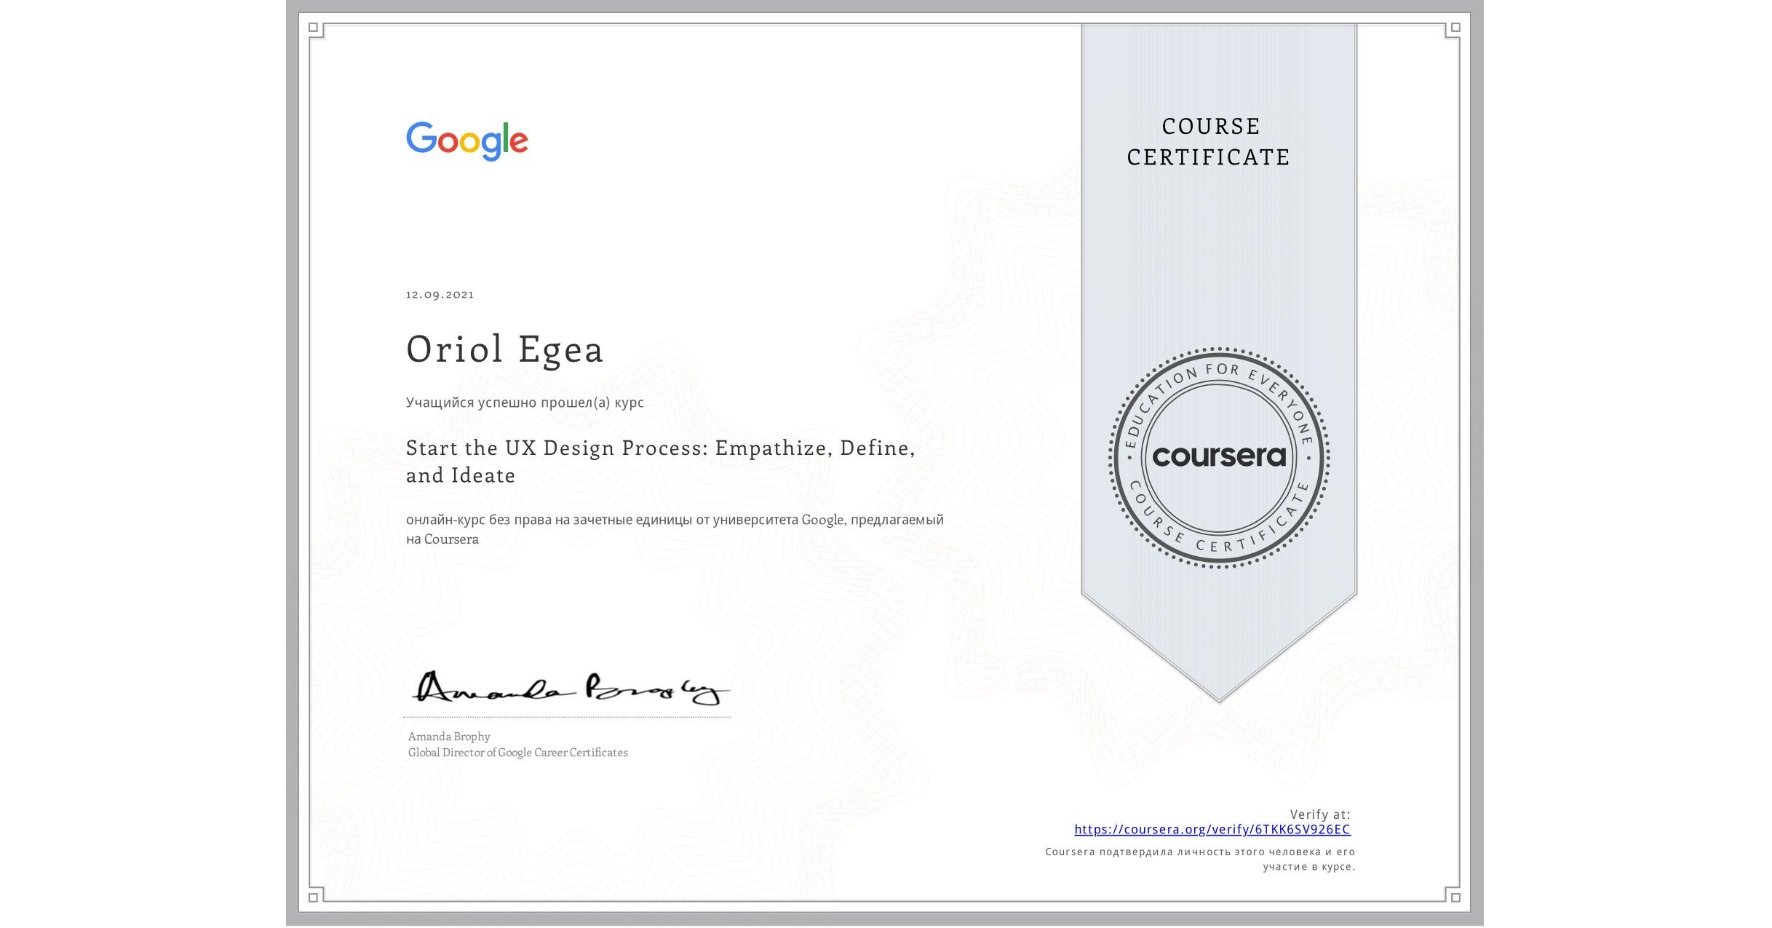 View certificate for Oriol Egea, Start the UX Design Process: Empathize, Define, and Ideate, an online non-credit course authorized by Google and offered through Coursera